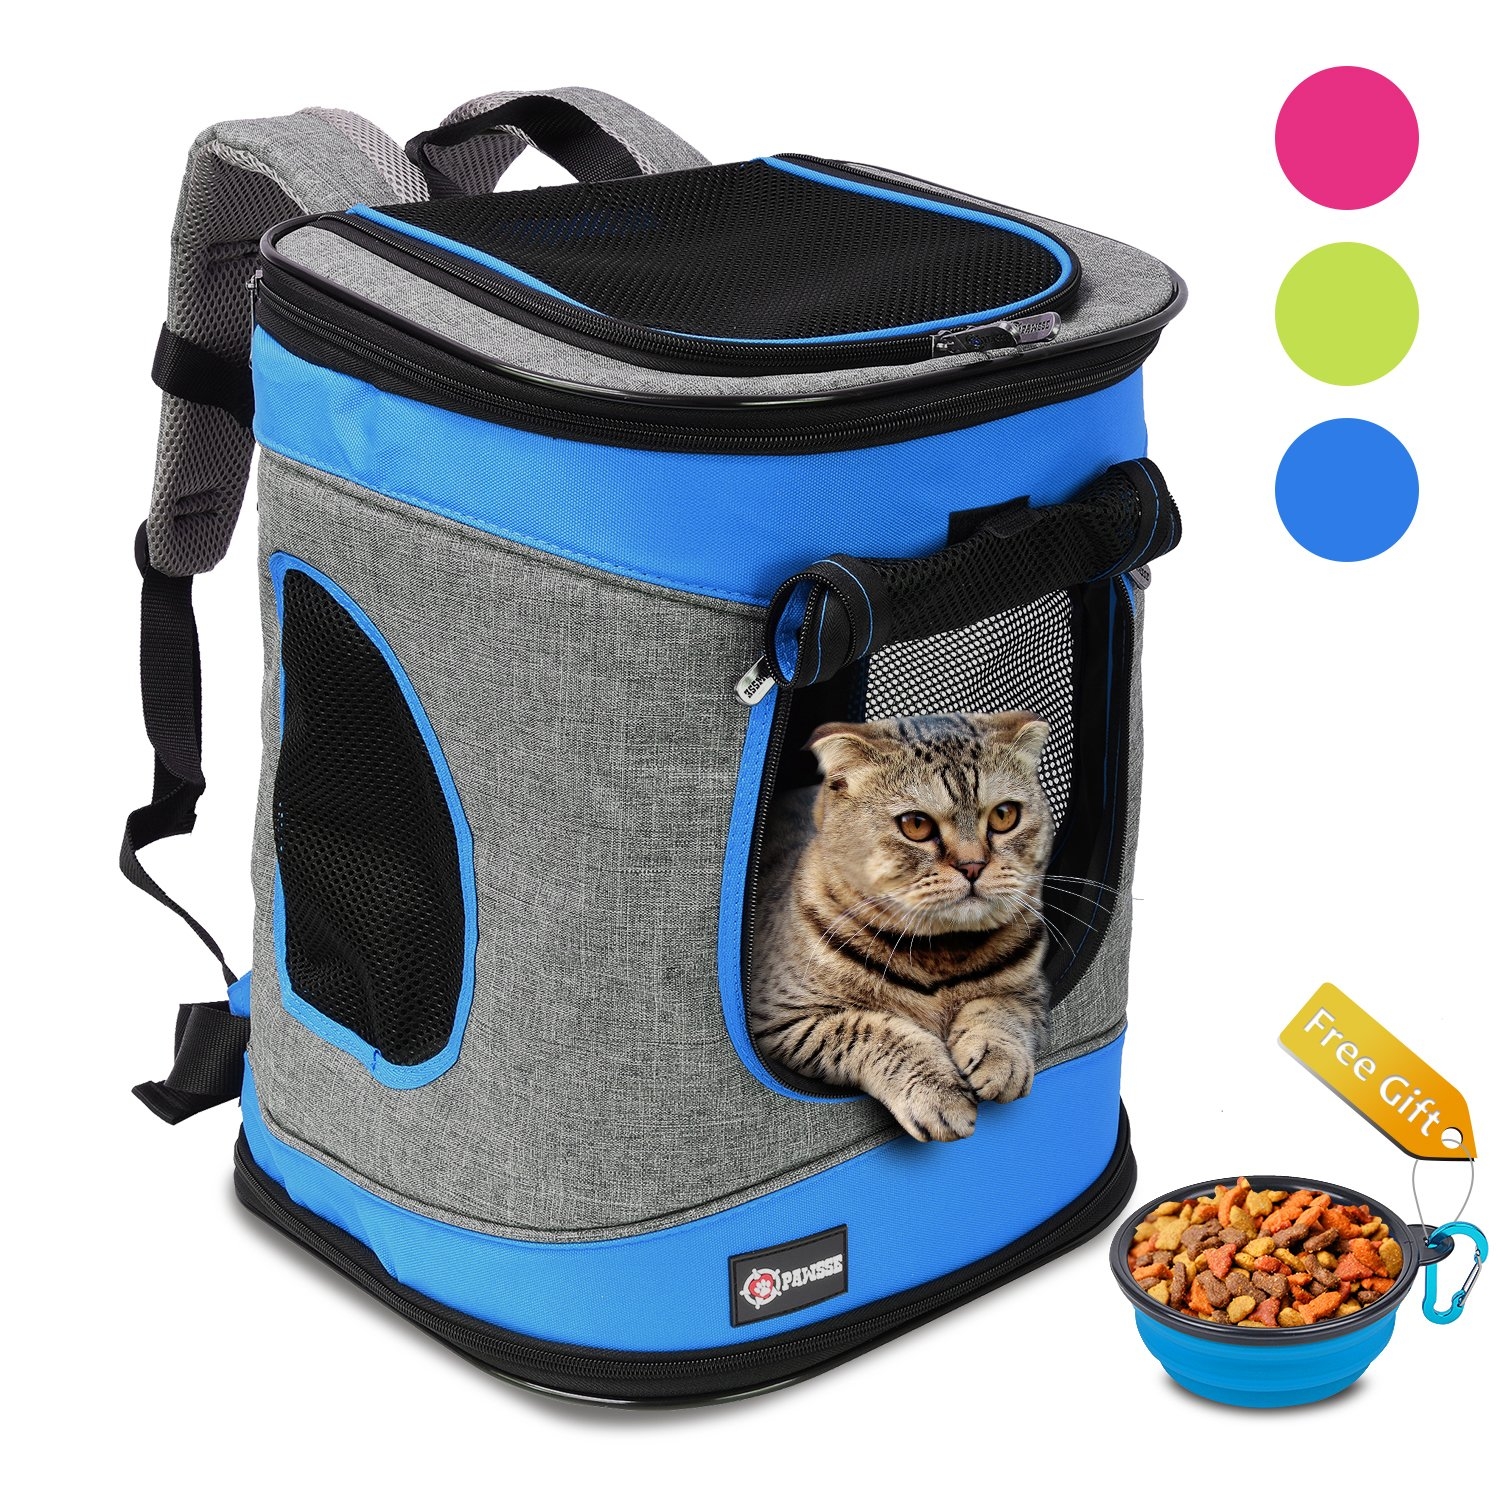 Pawsse Comfort Pet Carrier Backpack for Cats and Dogs up to 15 LBS Outdoor Travel Carrier for Pets Hiking, Walking, Cycling & Outdoor Use 16'' H x13.2 L x12 W Blue